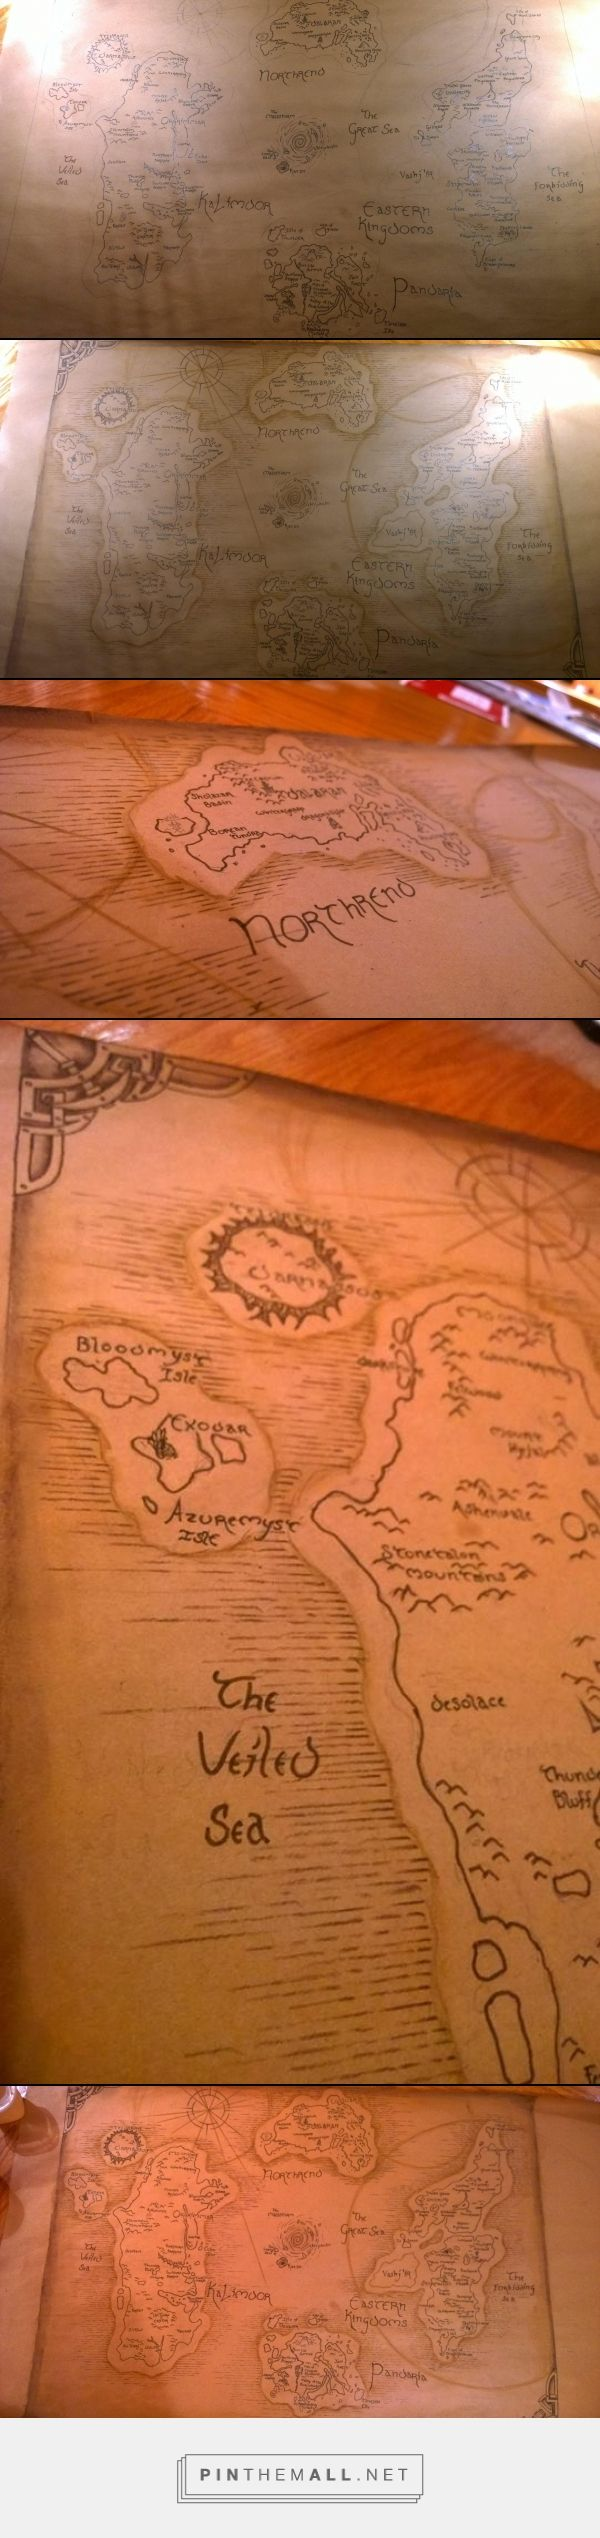 map of Azeroth from the mmorpg World of Warcraft. outlines and names done in ink and the horizontal lines in the ocean are brown colored pencil, the smudging on the sides of the paper and the big circles on the map are watercolor pencil.